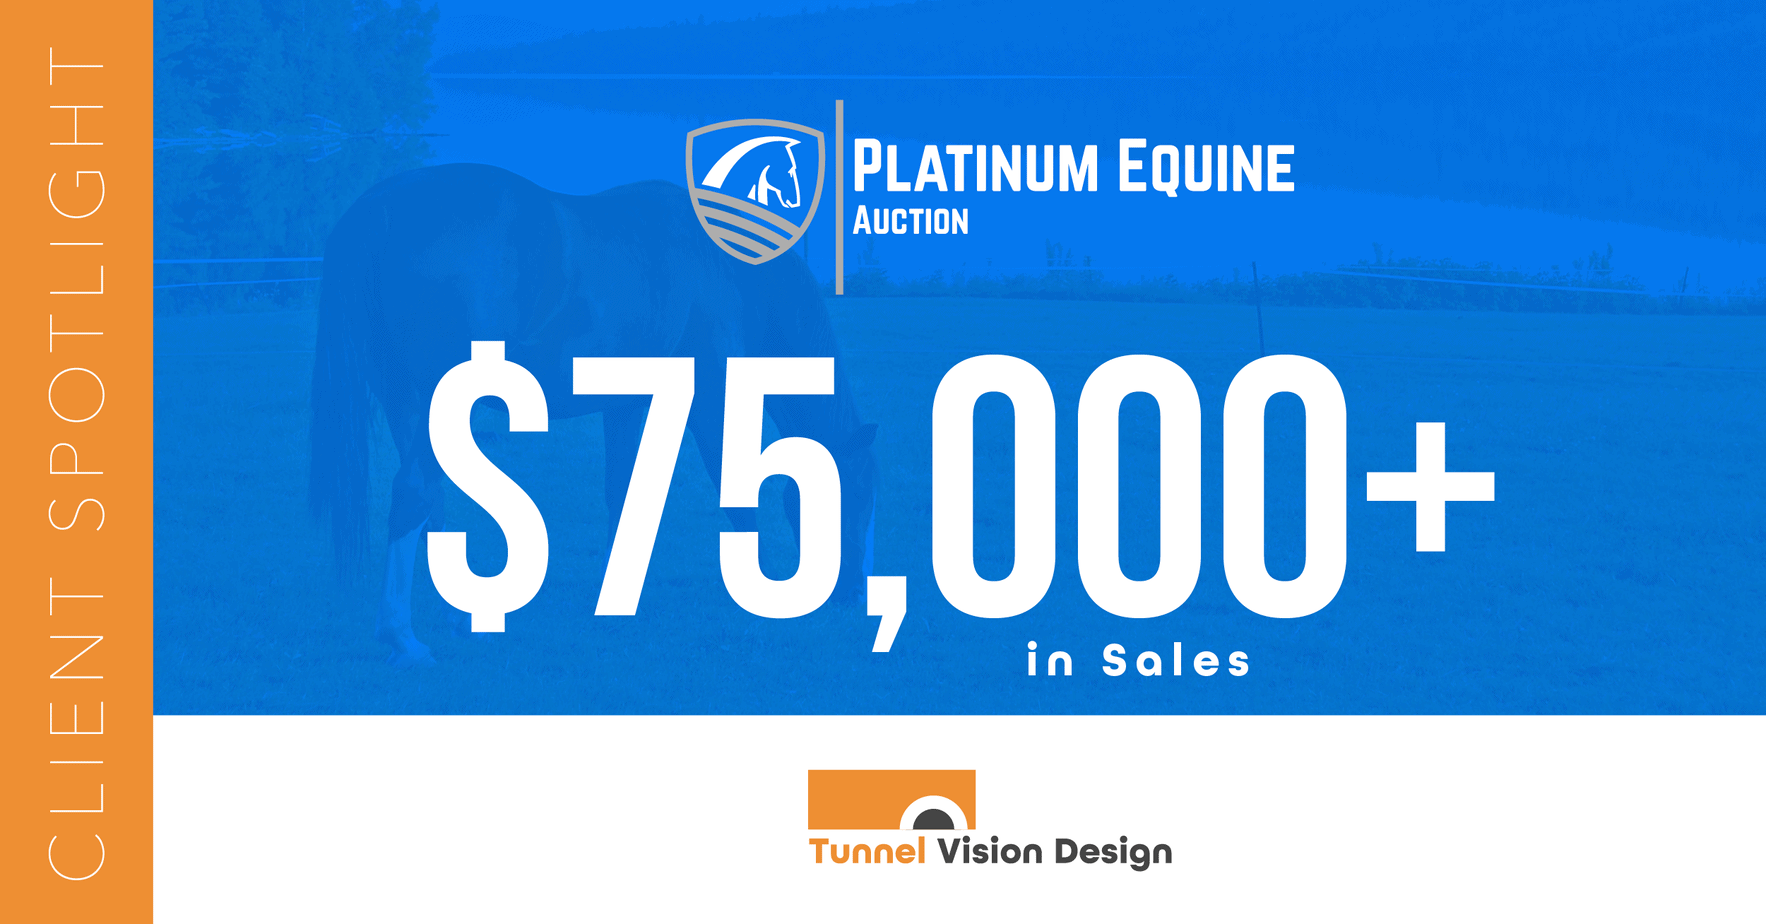 Platinum Equine Auction